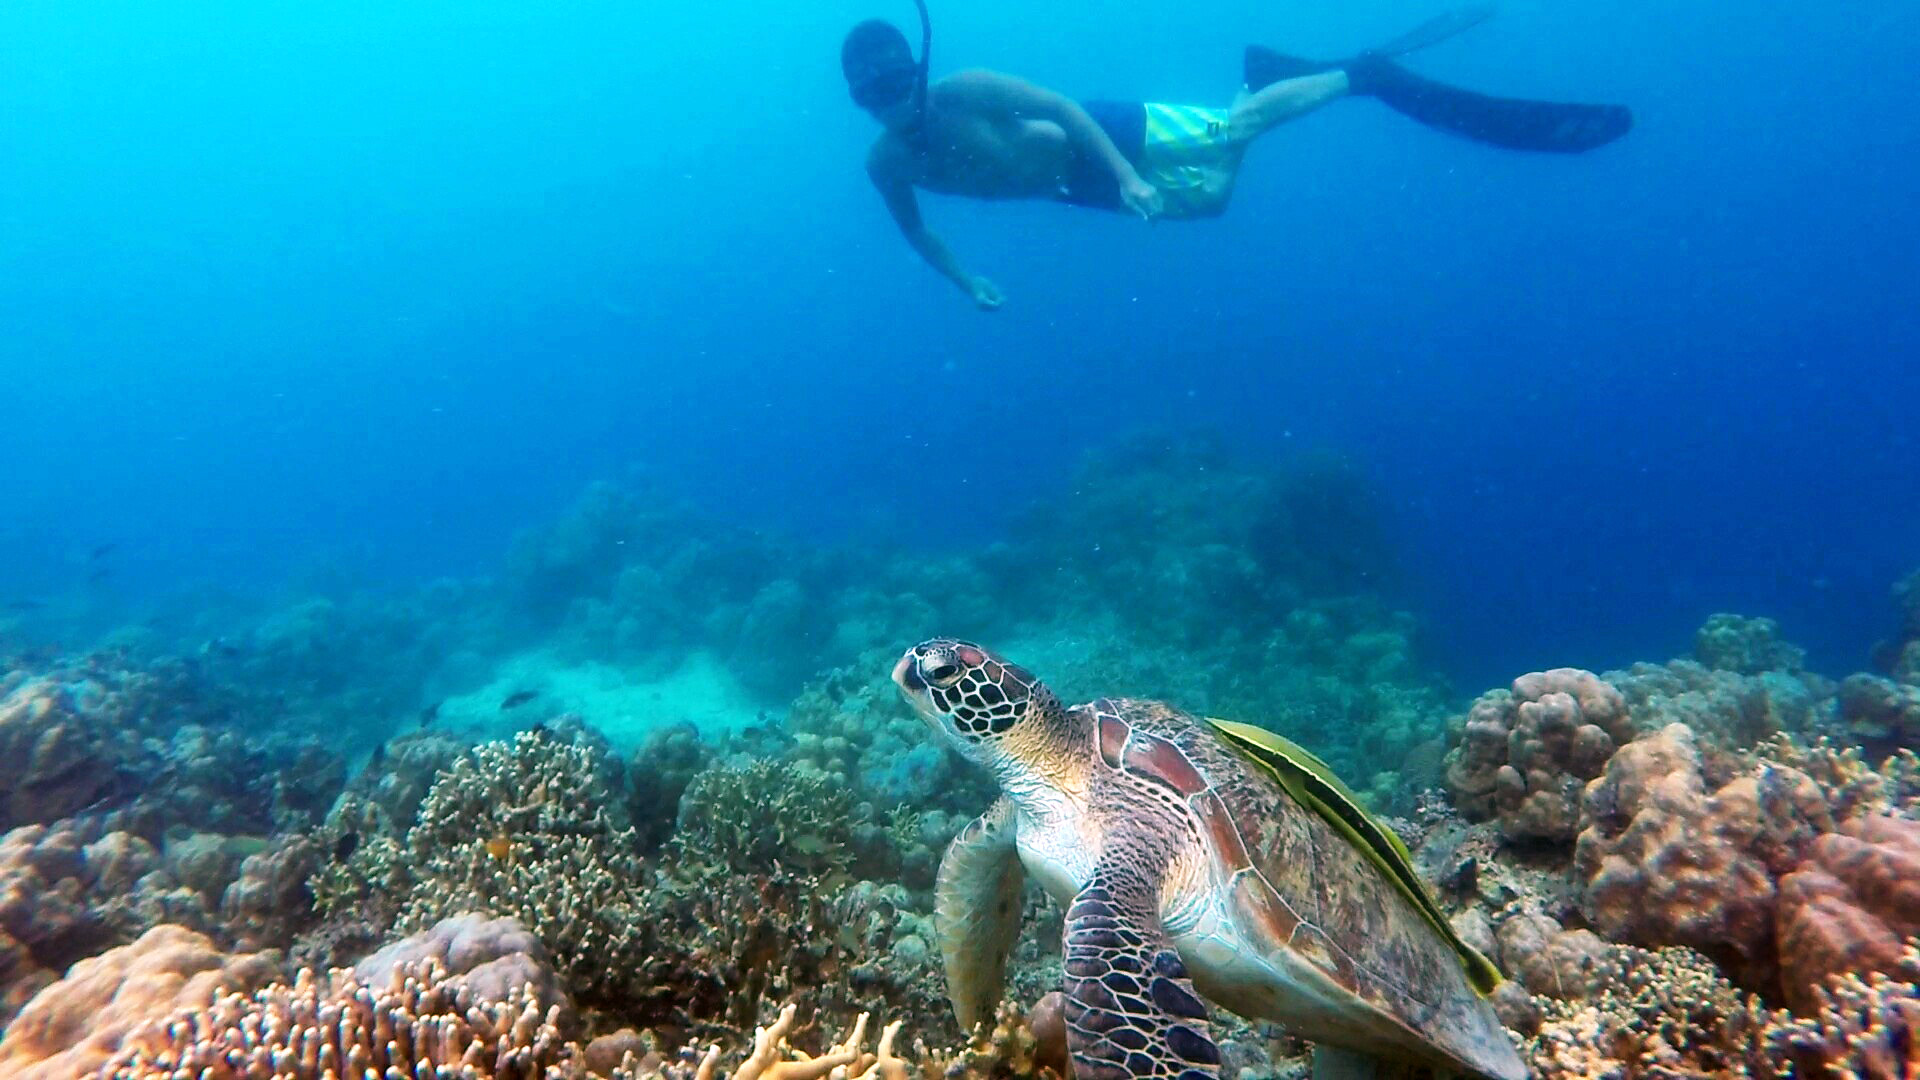 tourist snorkling with turtle.